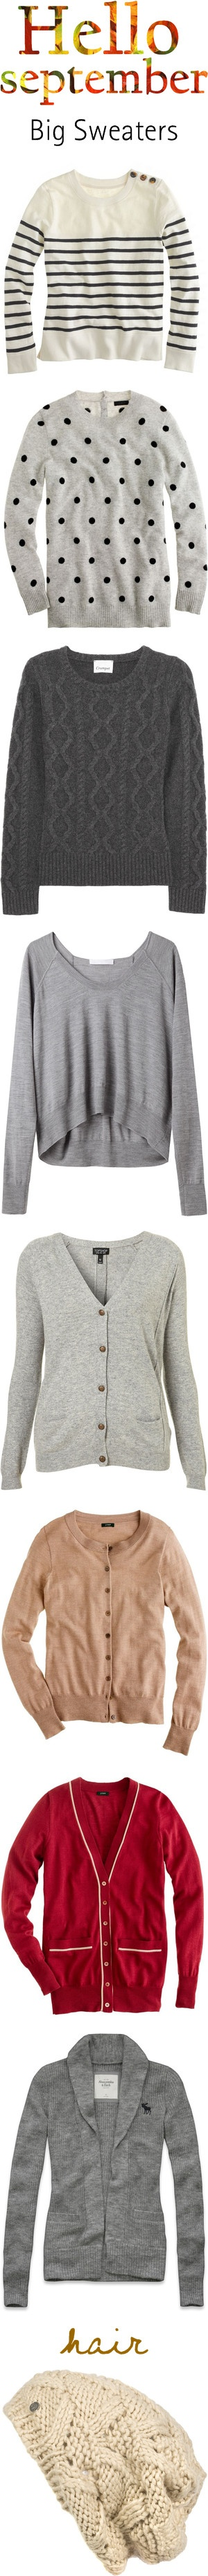 I love sweaters and cardigans. c: